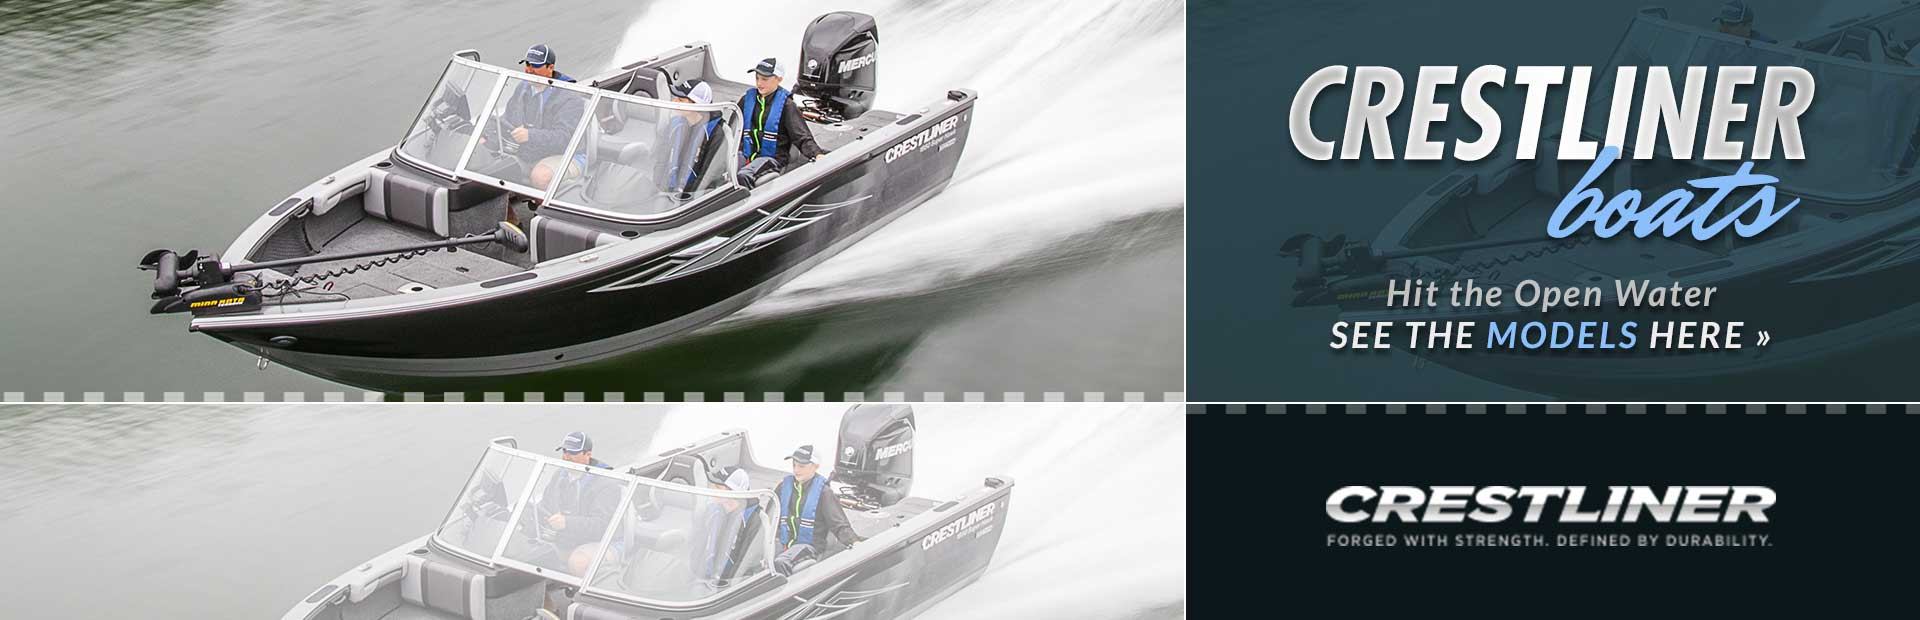 Crestliner Boats: Click here to view the models.